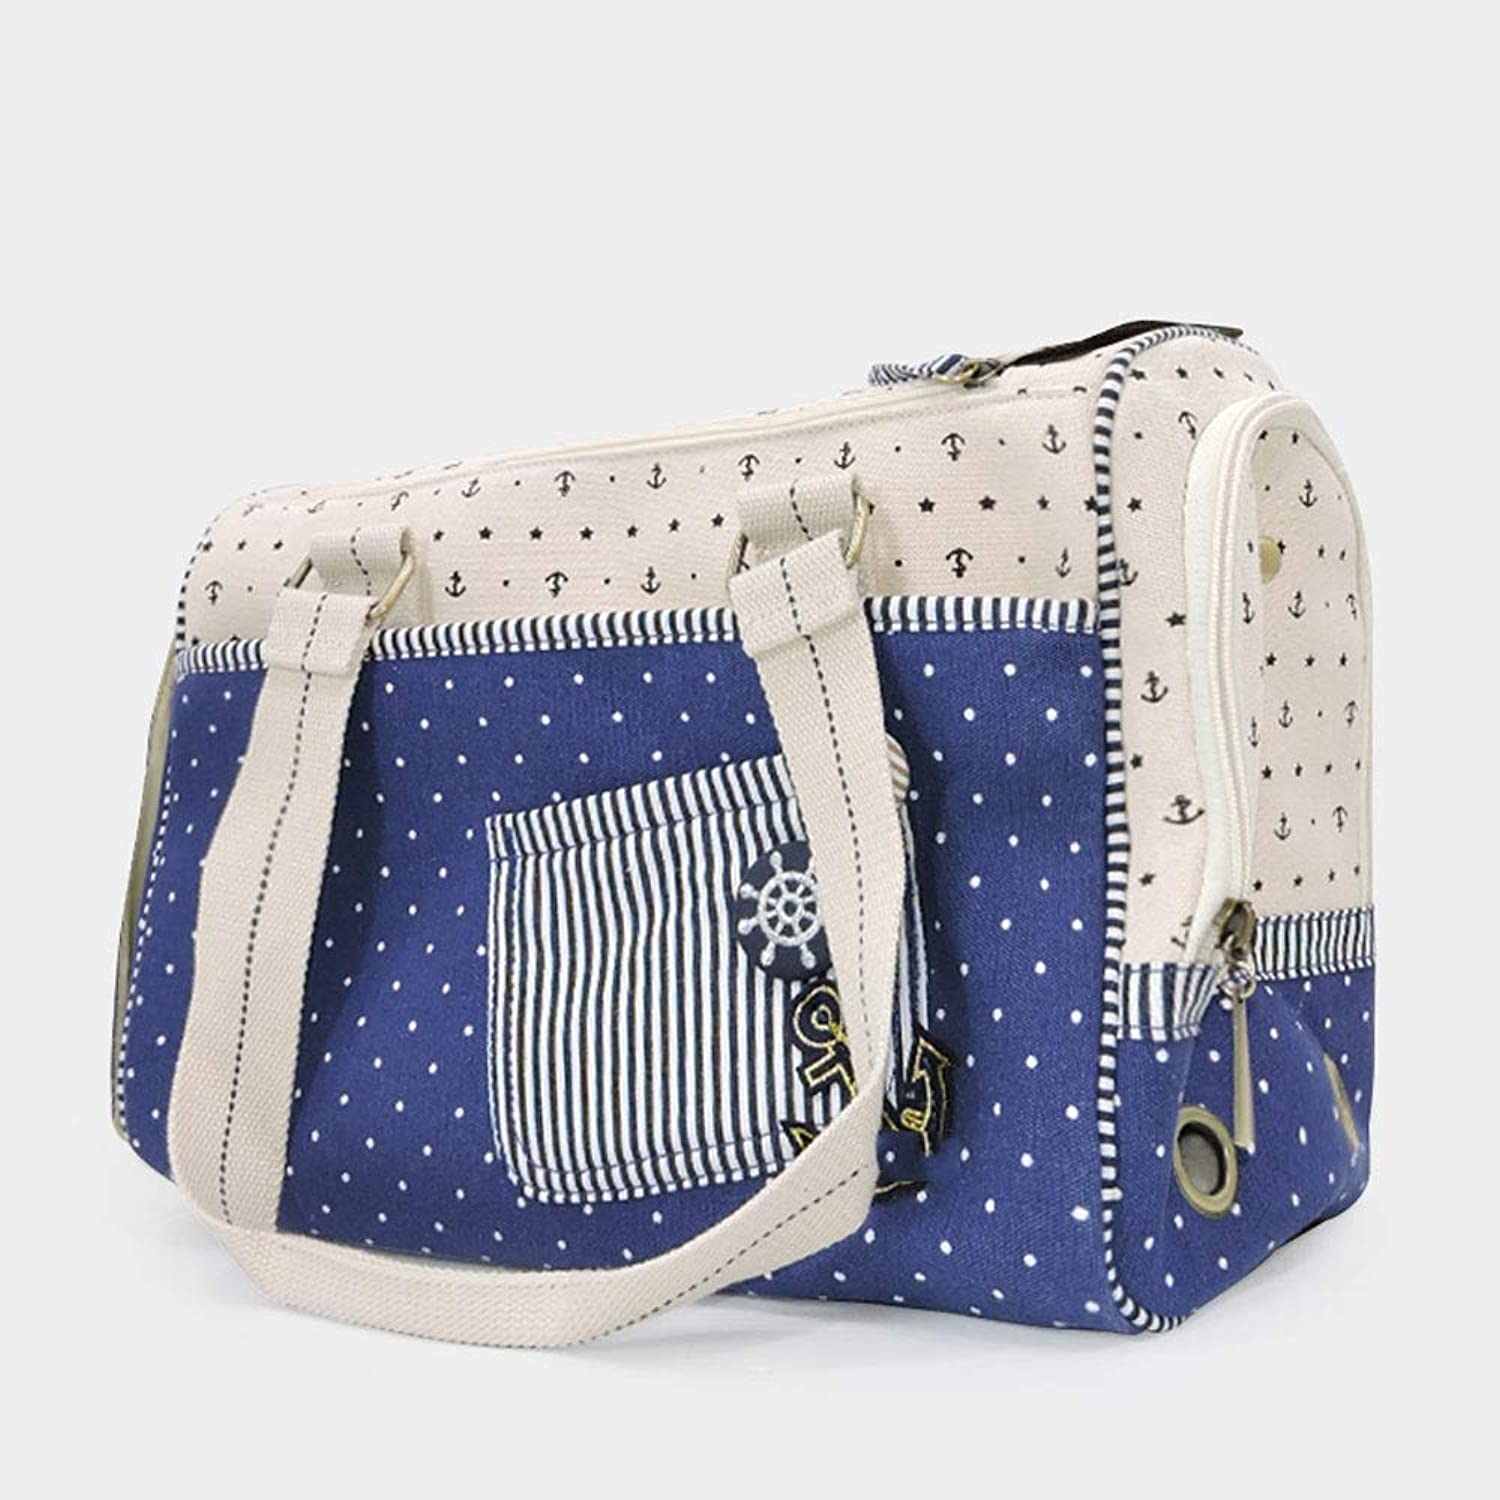 Obzk Closed Pet Bag Airline Approved For Travel Portable Cat Bag Suitable For Small Cats And Dogs,bluee,M